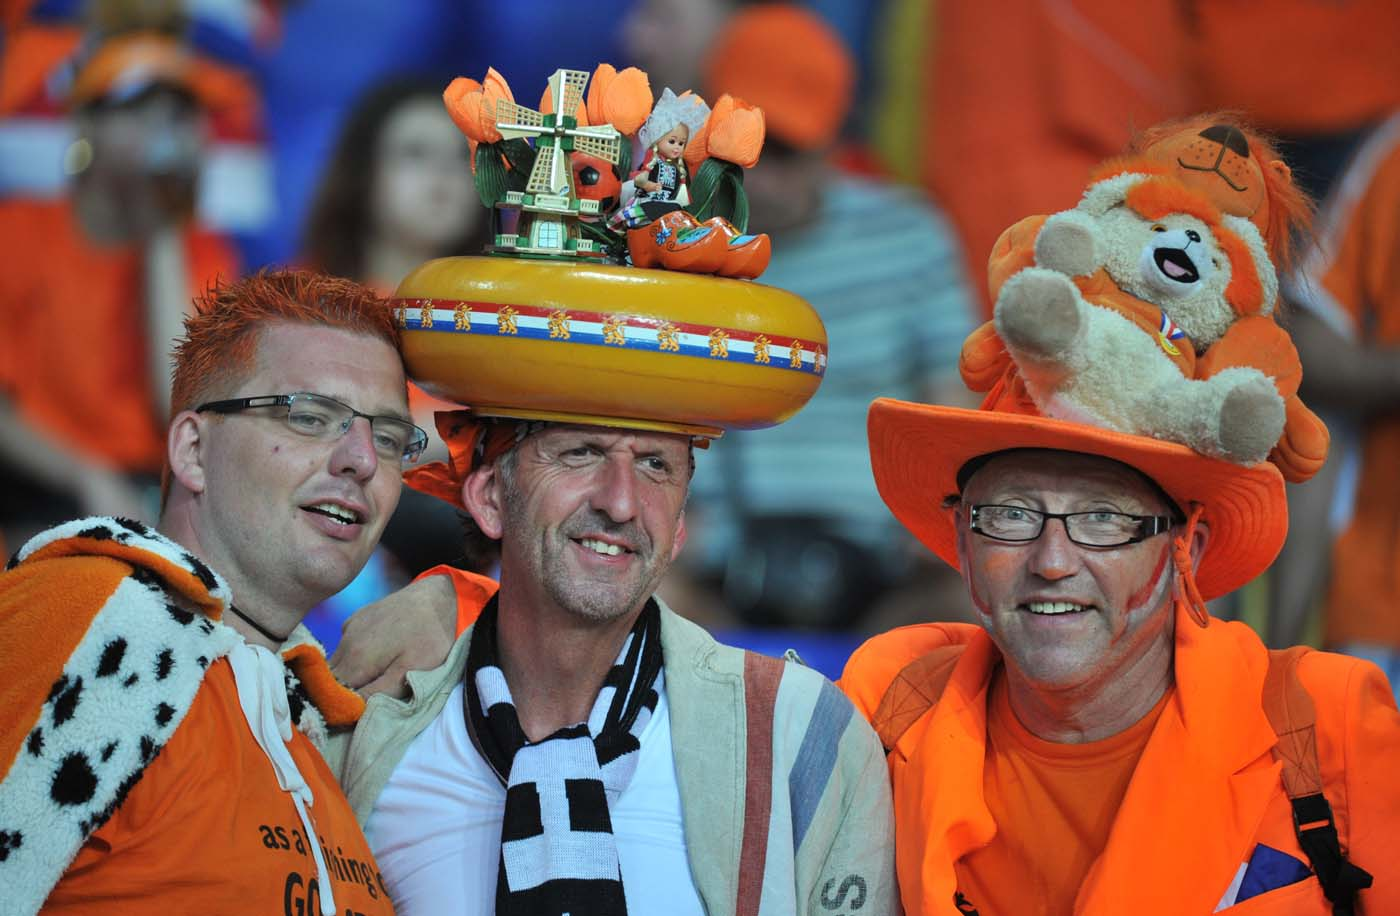 Disguised fans of the Netherlands' national football team pose prior to the Euro 2012 championships football match the Netherlands vs Germany on June 12, 2012 at the Metalist Stadium in Kharkiv. (Genya Savilov/AFP/Getty Images)